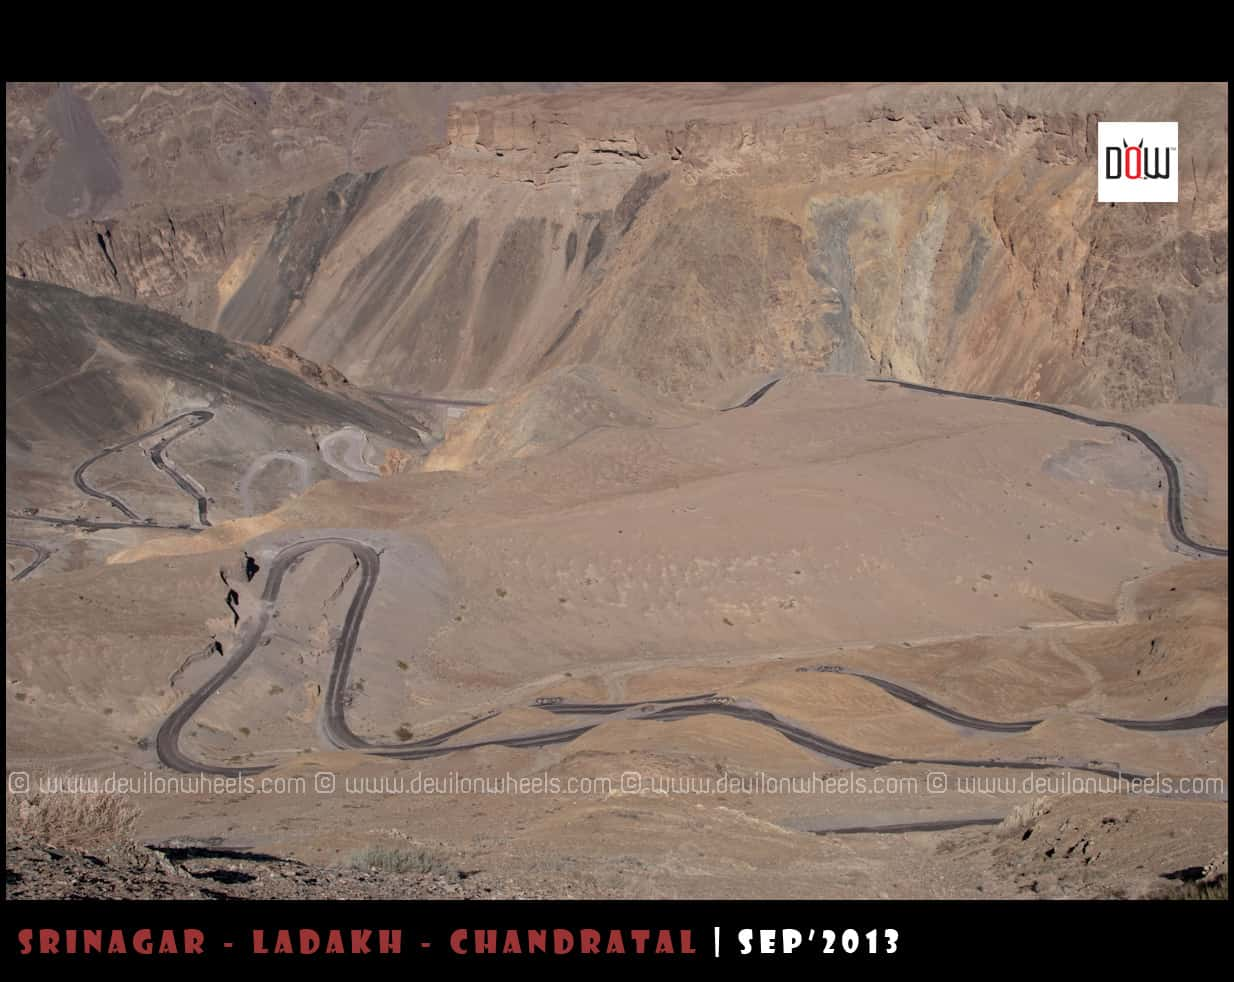 Hangroo Loops at Srinagar - Leh Highway